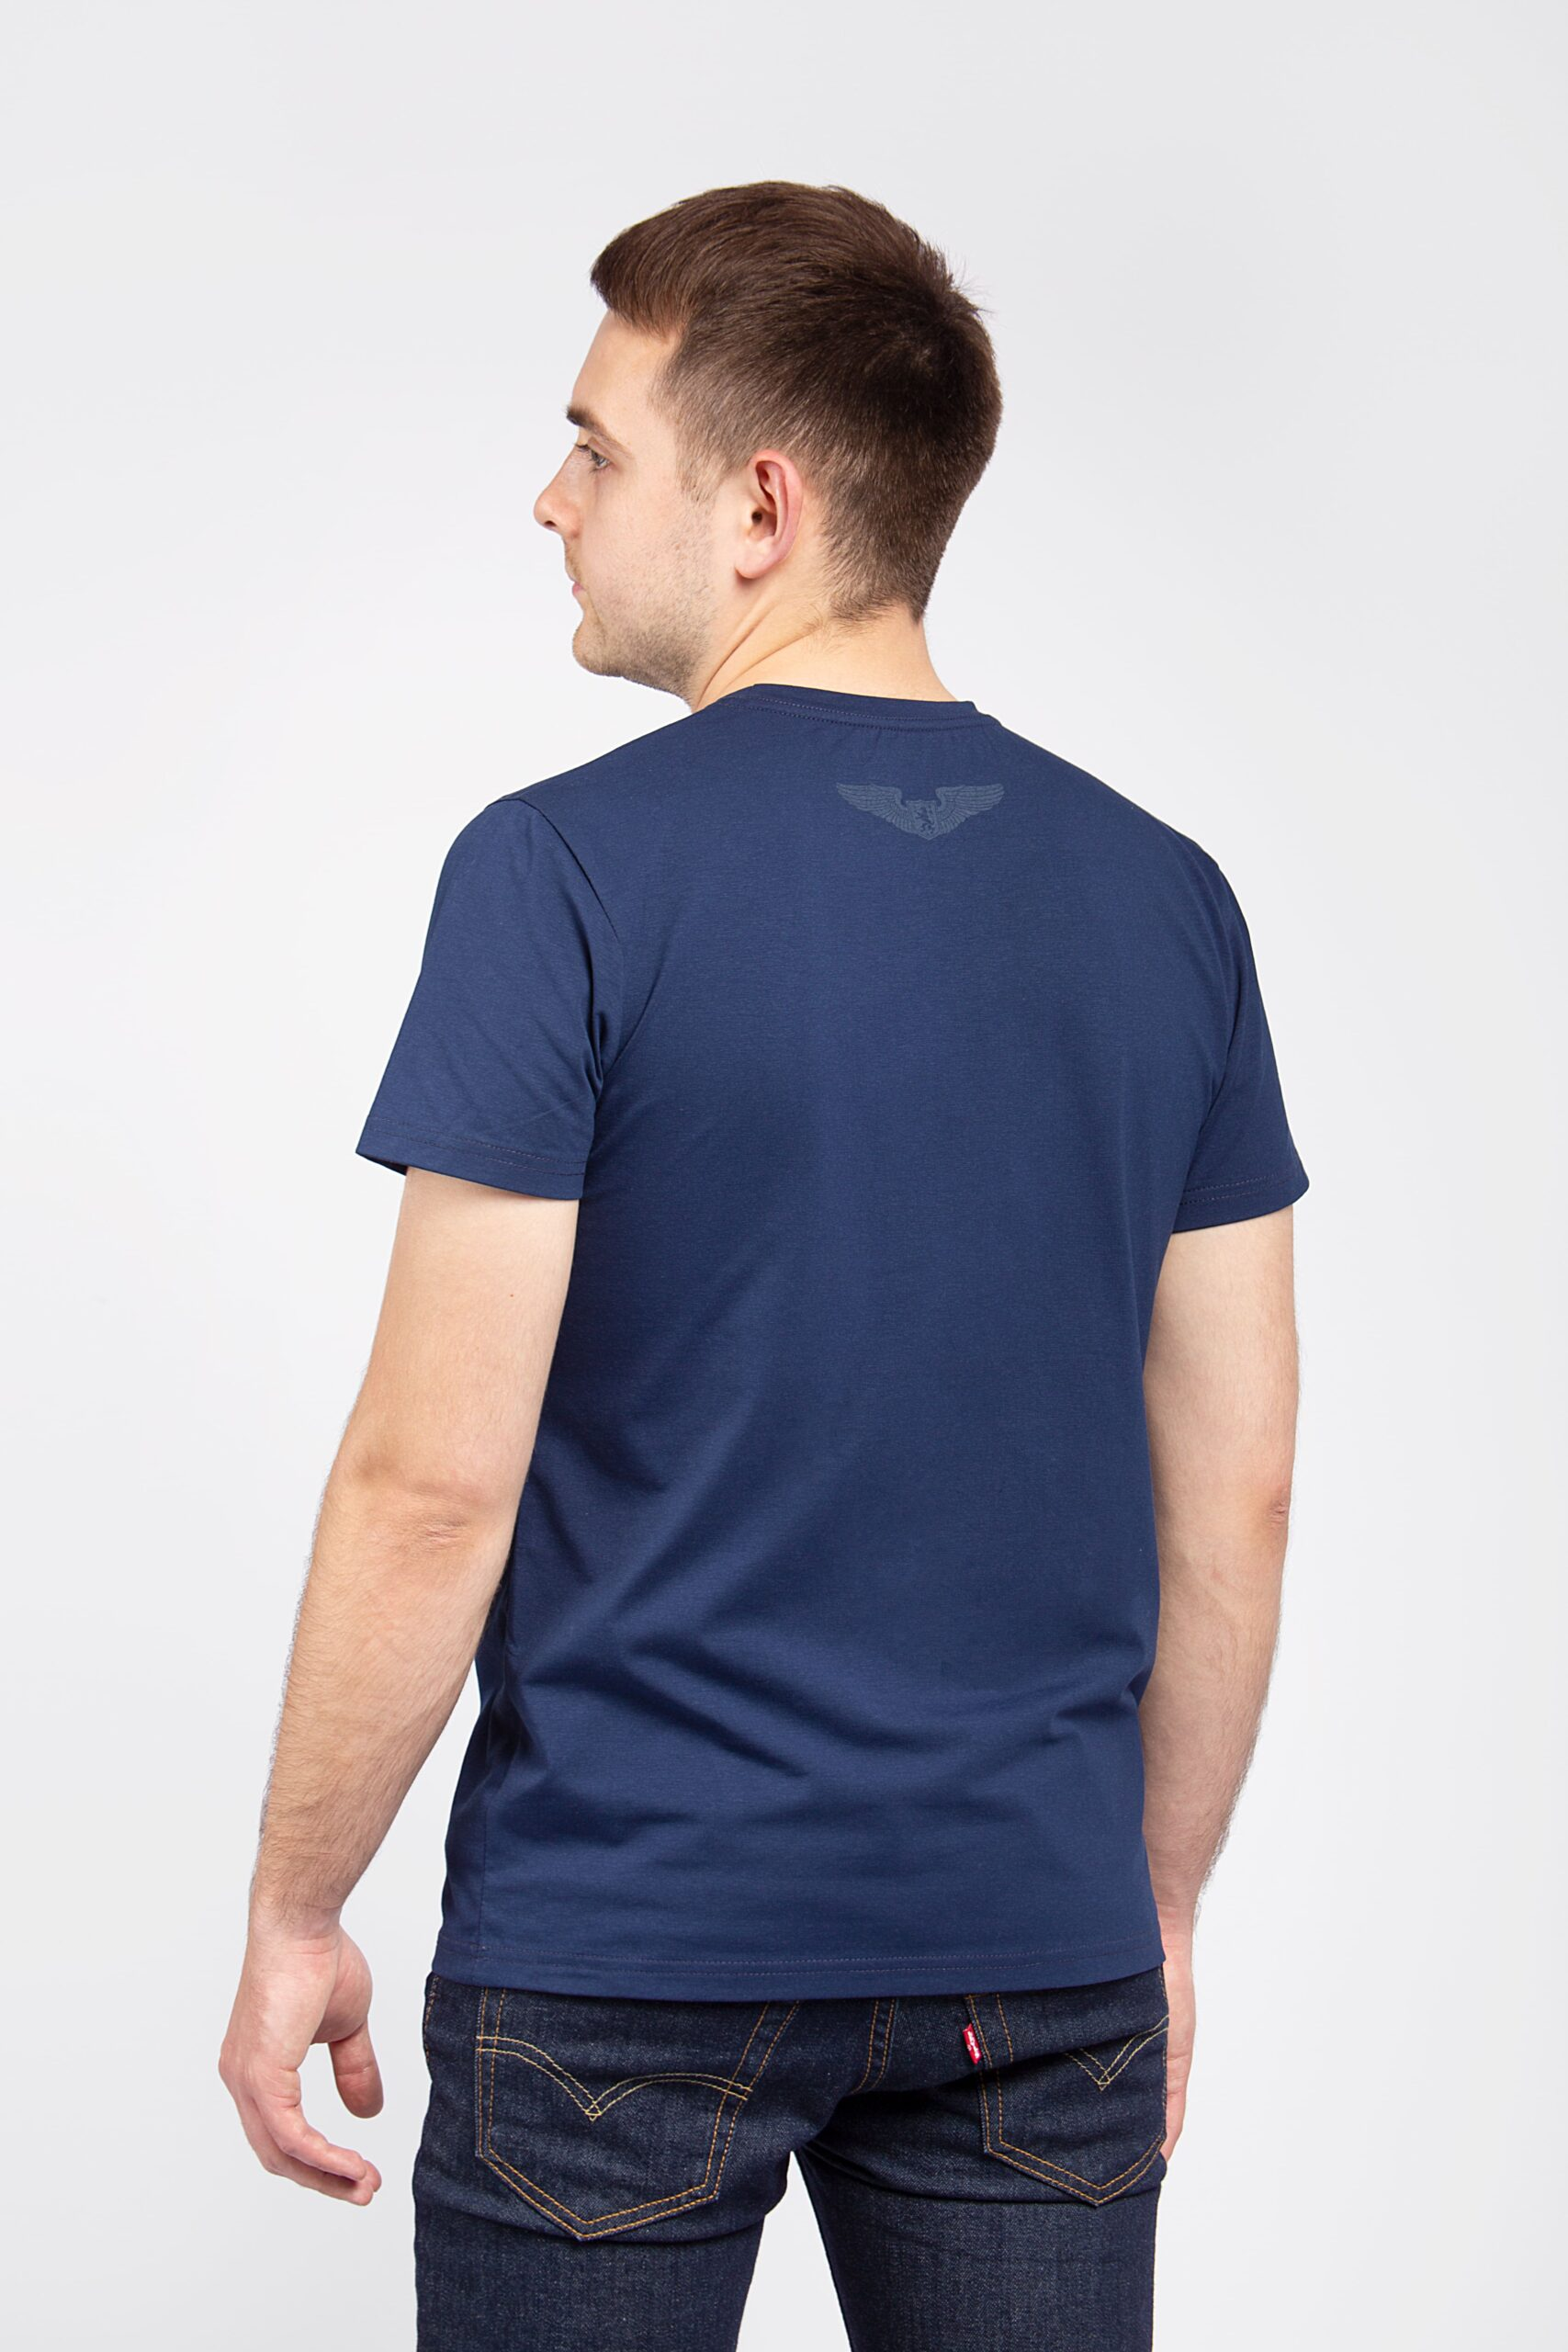 Men's T-Shirt An. The Greatest Hits. Color navy blue. 06.